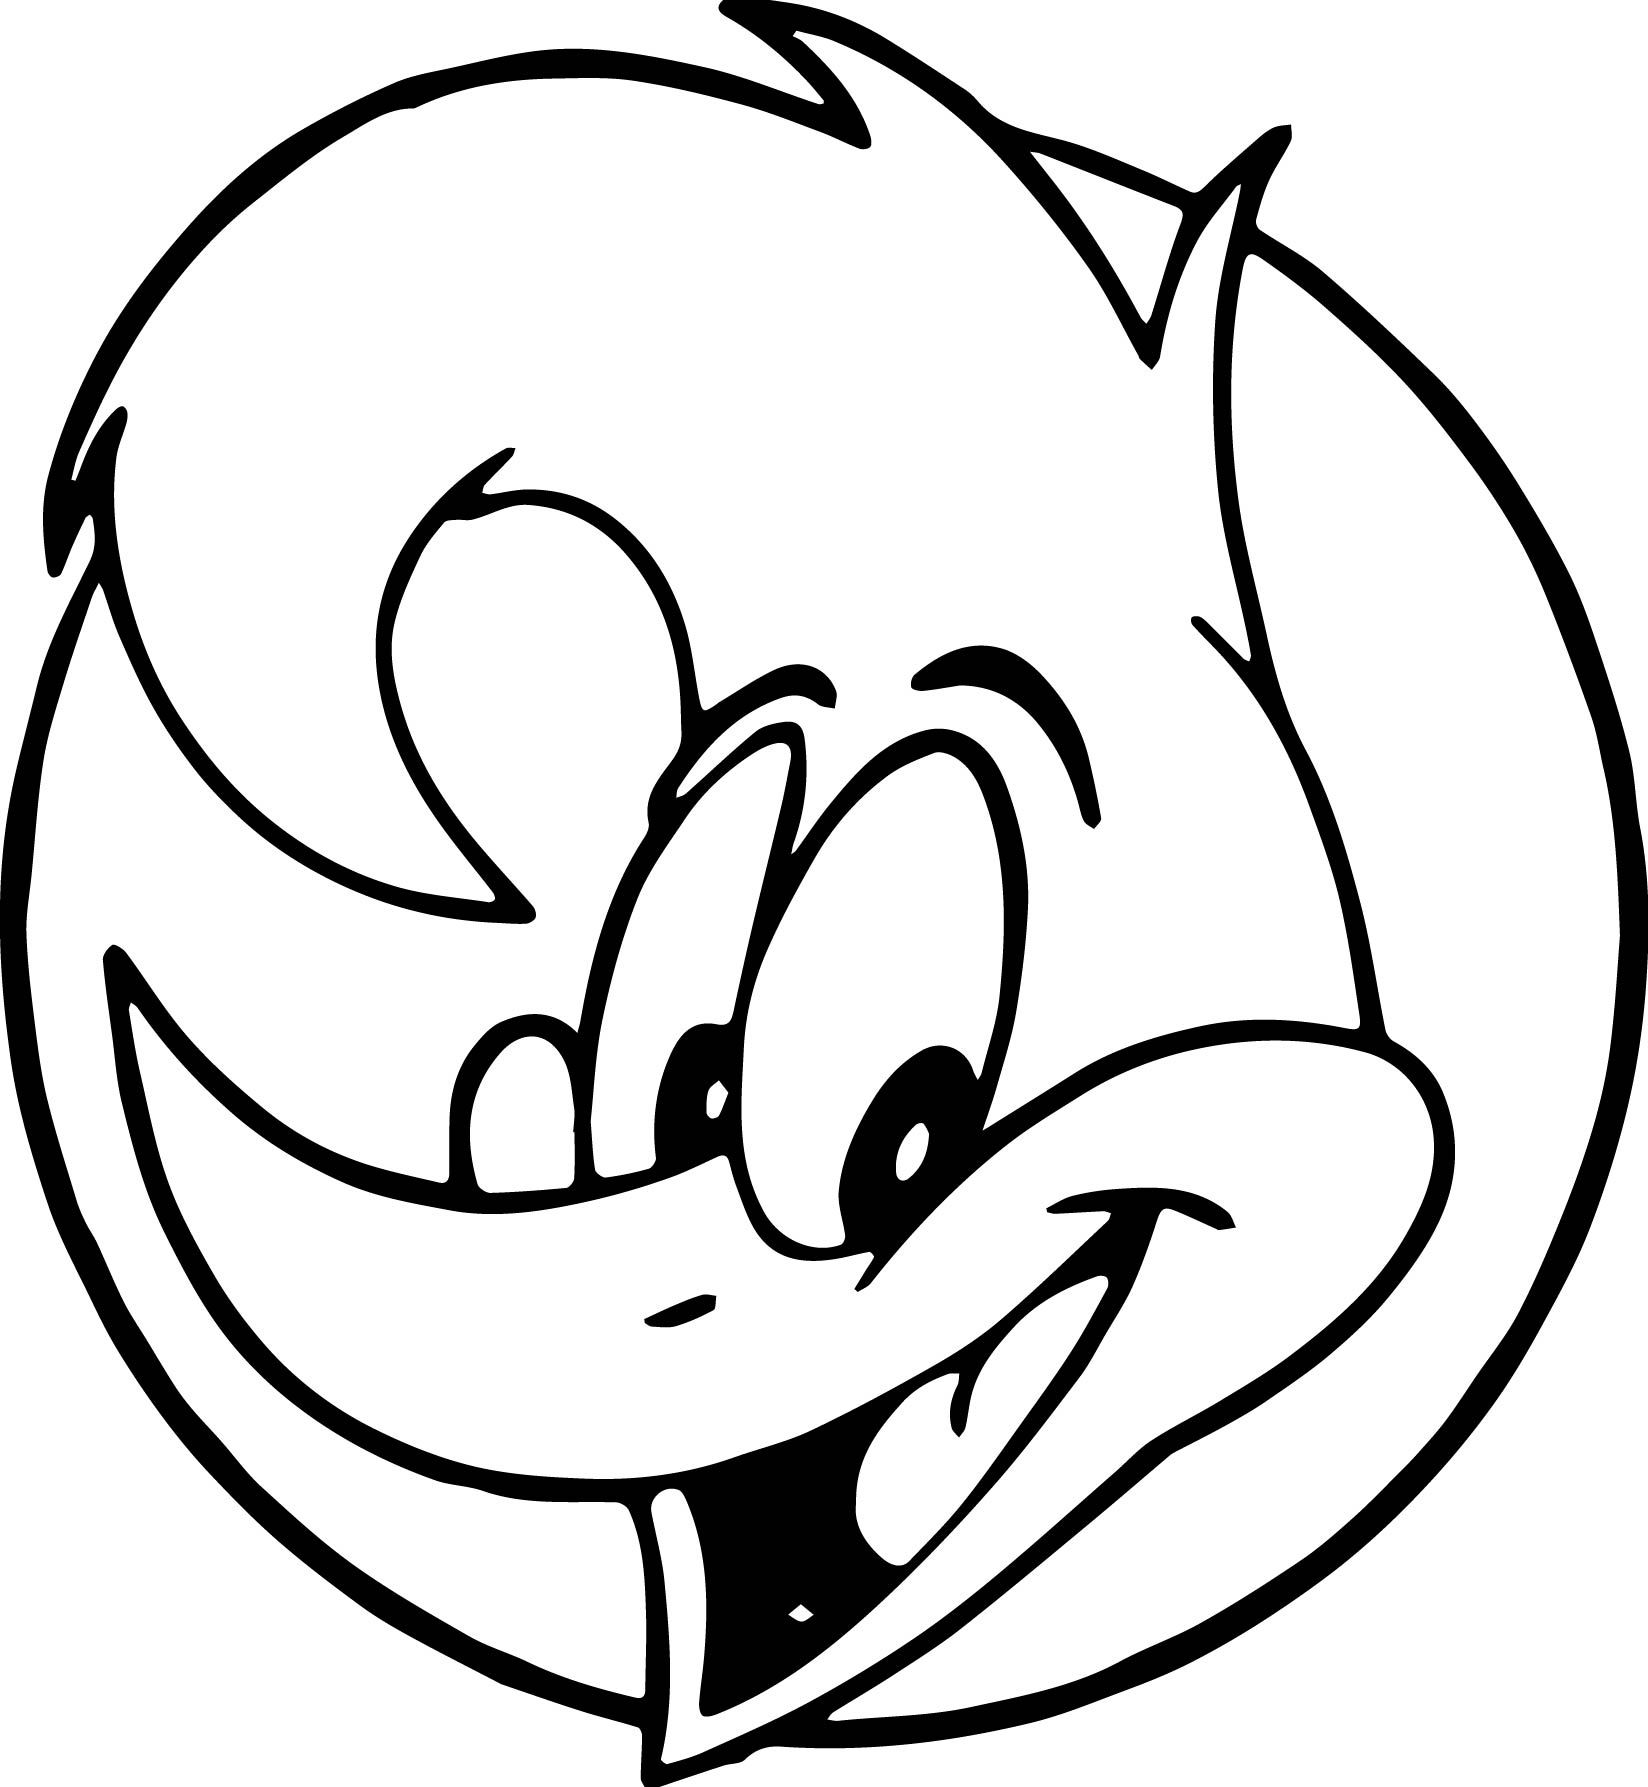 Woody Woodpecker Face Coloring Page